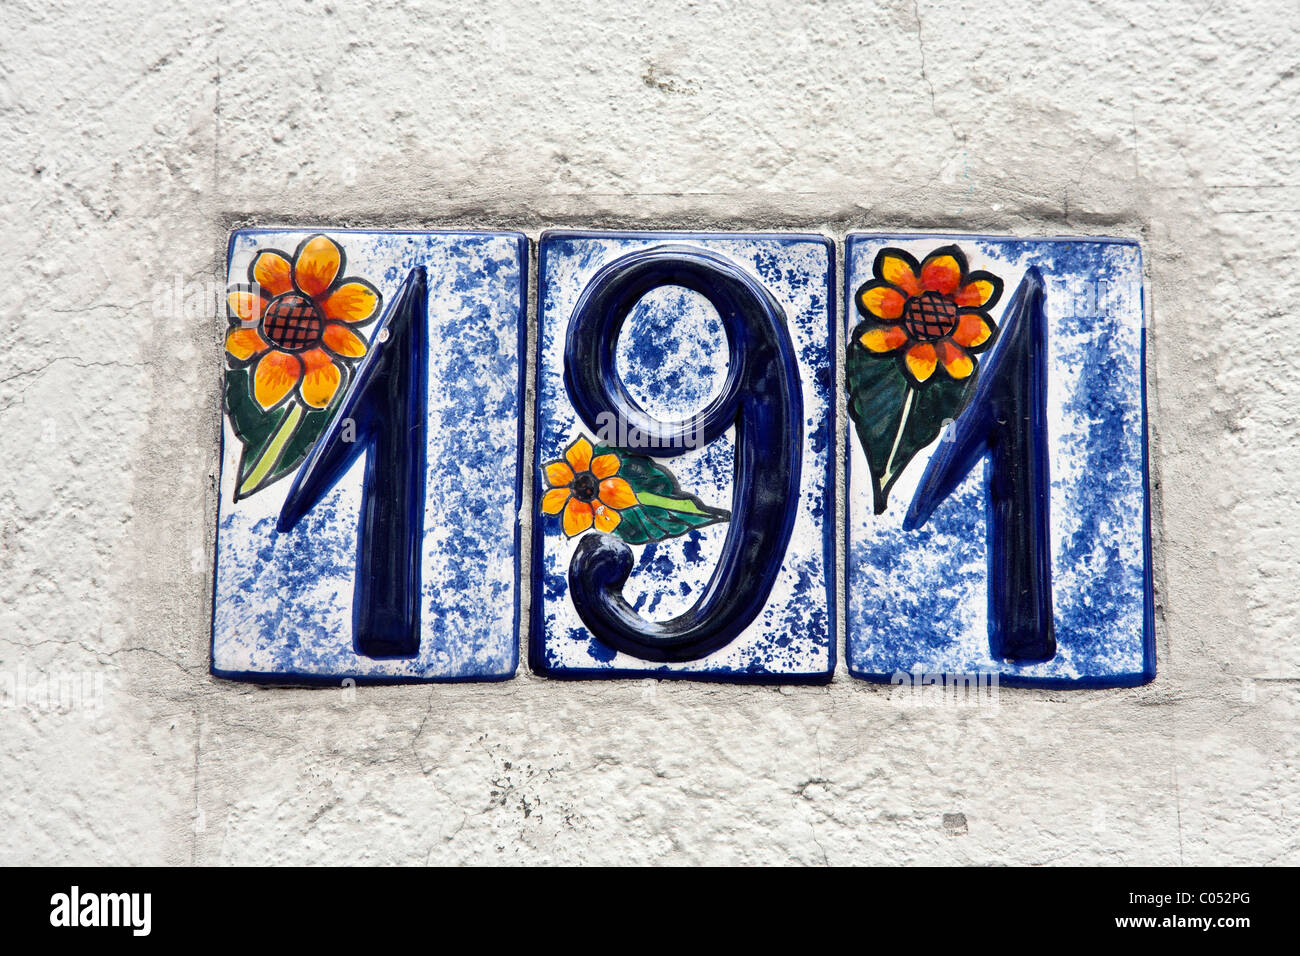 Beautiful whimsical decorative glazed ceramic house number hand beautiful whimsical decorative glazed ceramic house number hand painted with marvelous colored floral design roma district dailygadgetfo Images